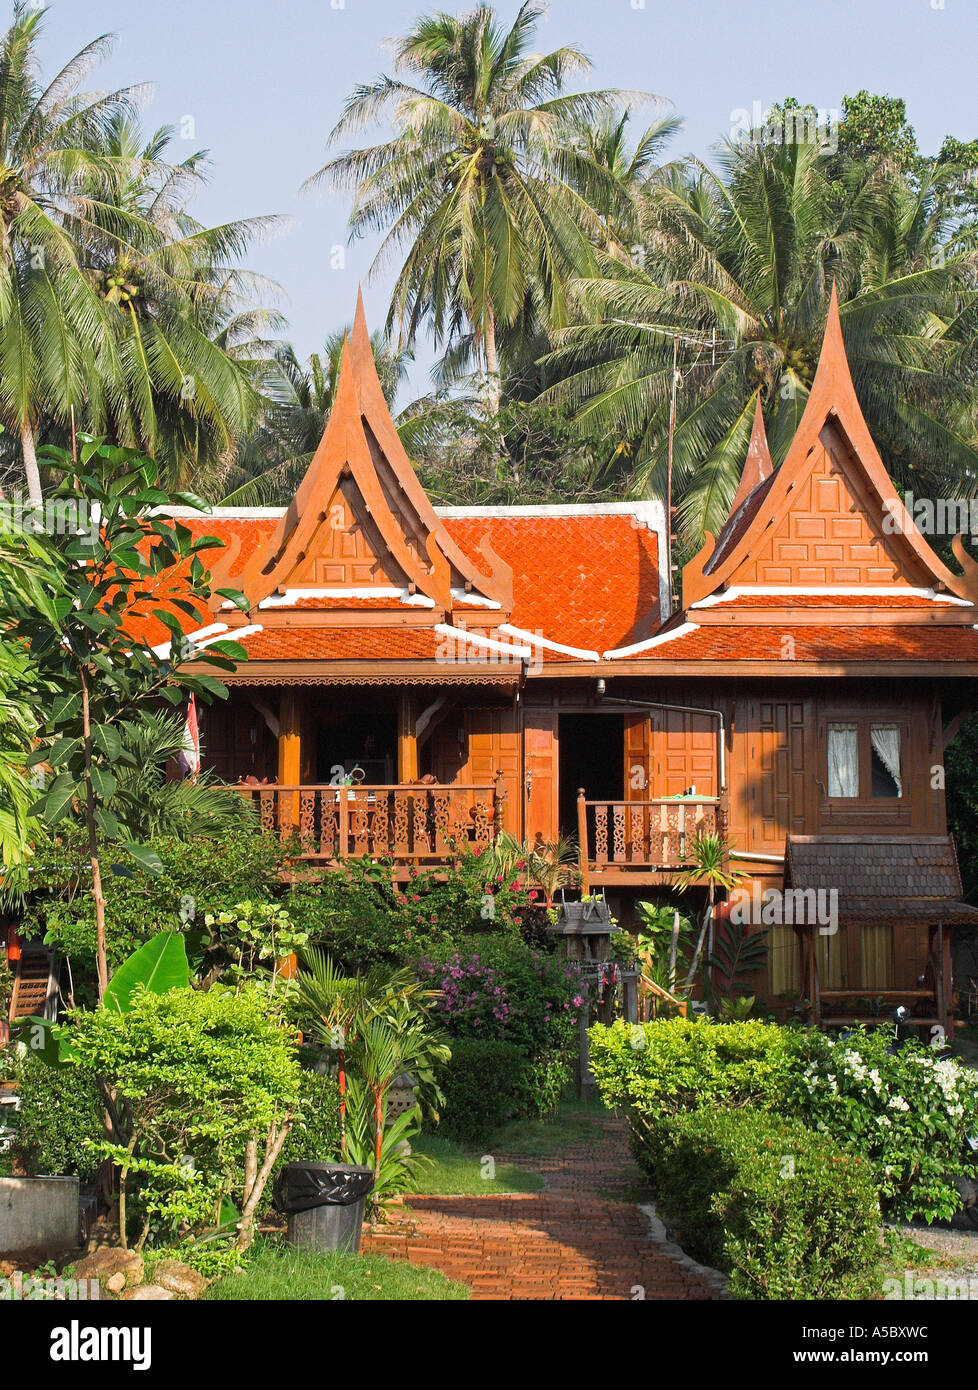 Traditional Carved Wood Two Storey Thai House And Garden